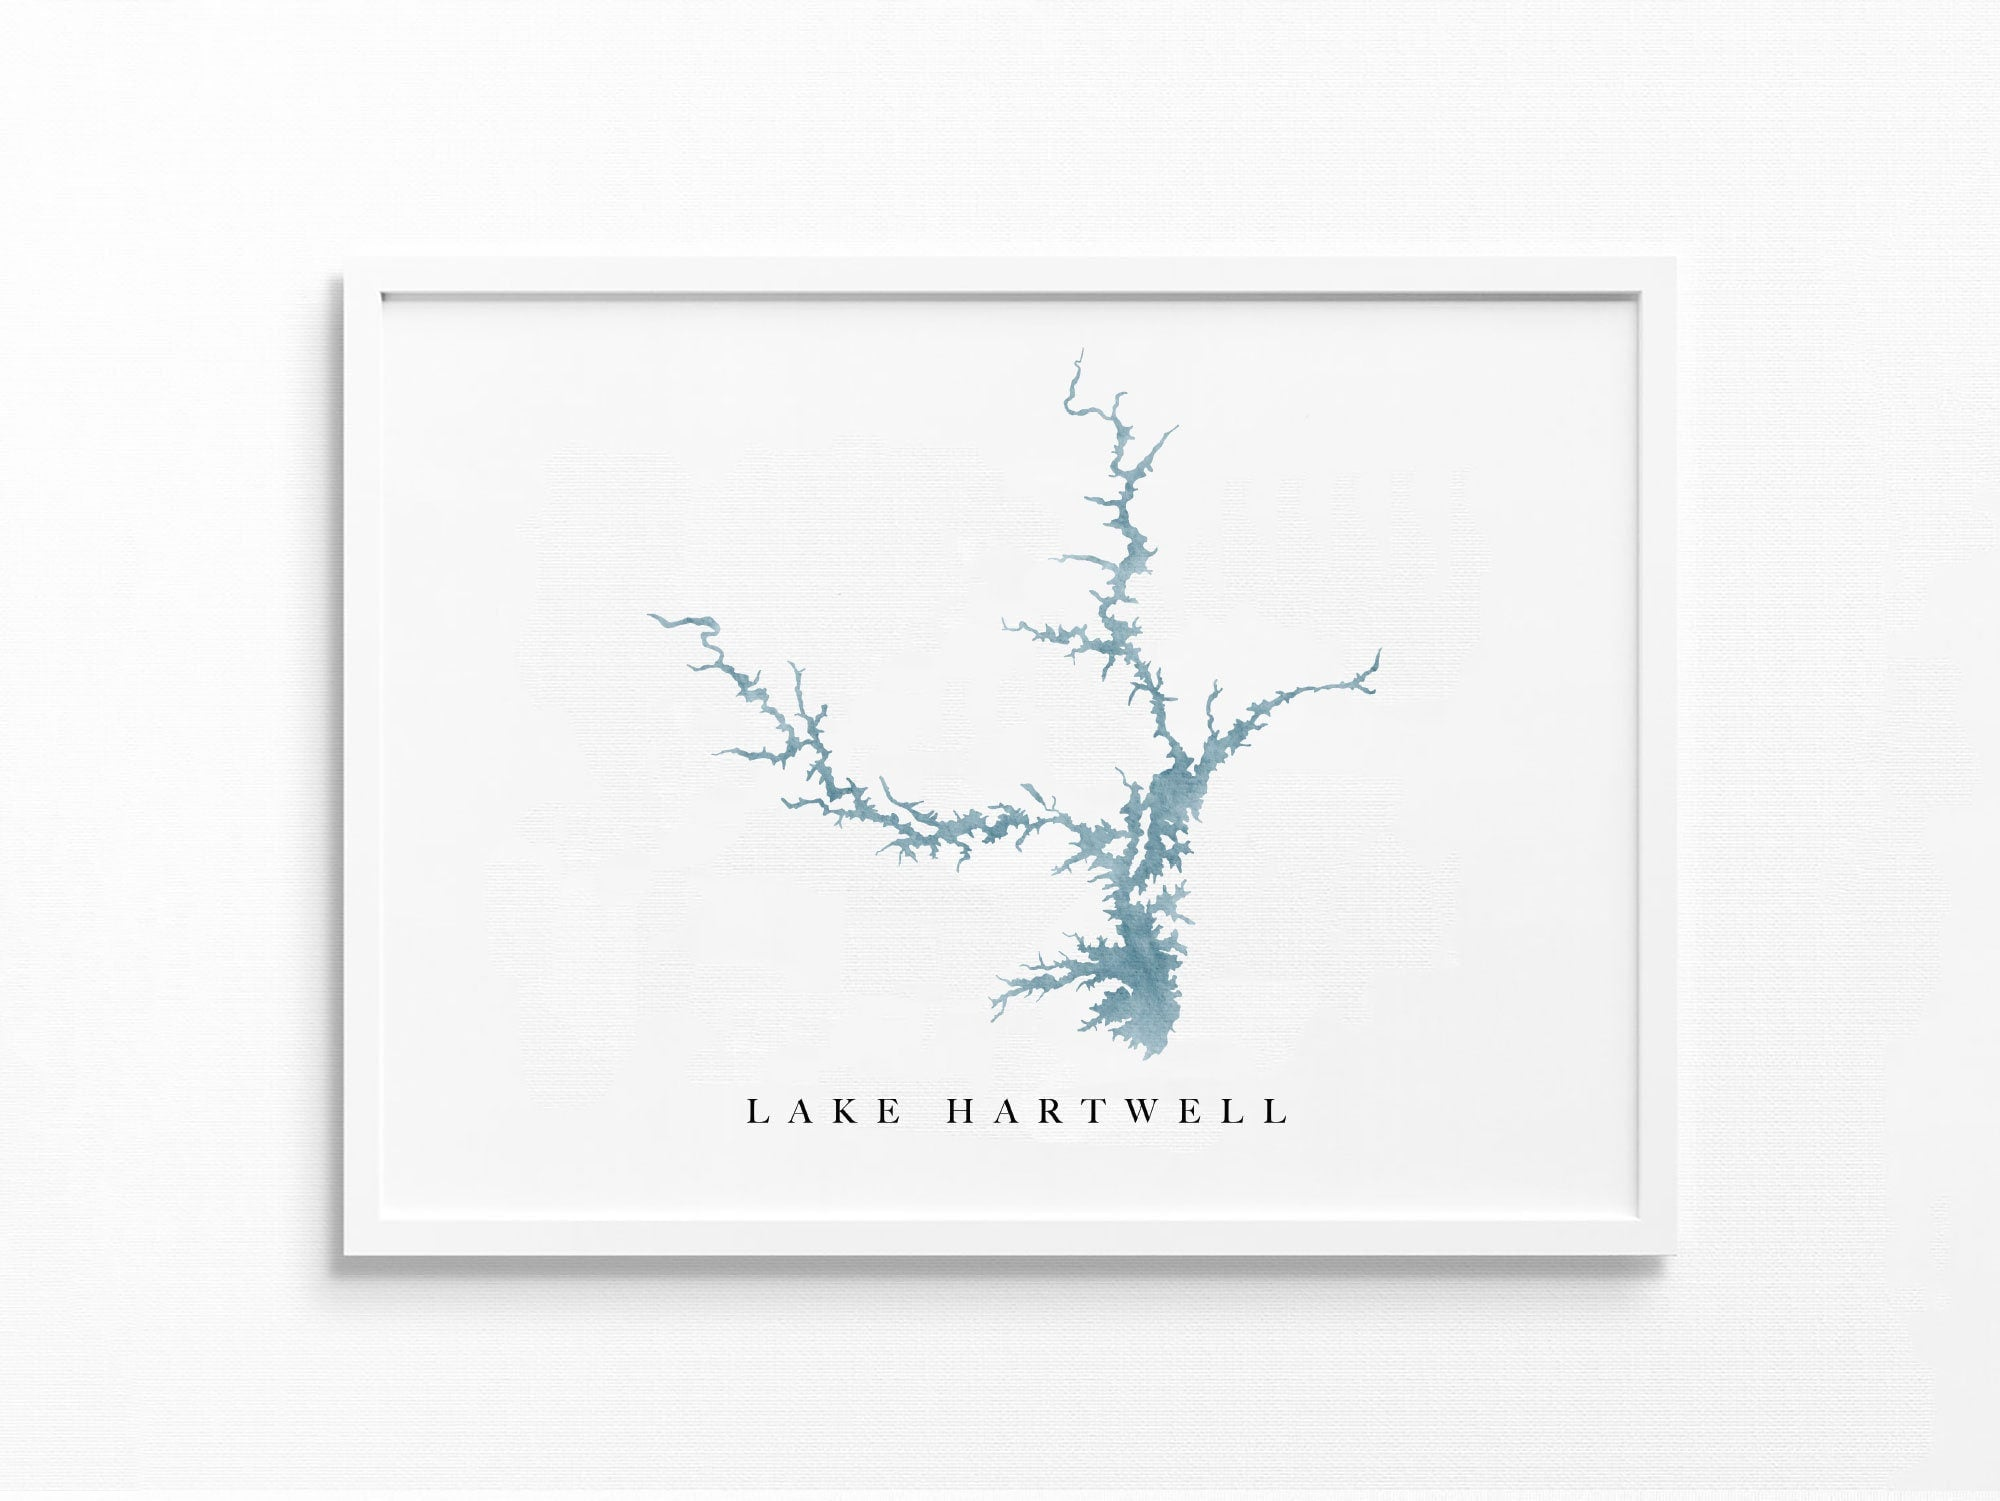 Lake Hartwell | Georgia and South Carolina | Lake Map, Lake Decor Gift, Lake Layout | Watercolor-style Print UNFRAMED